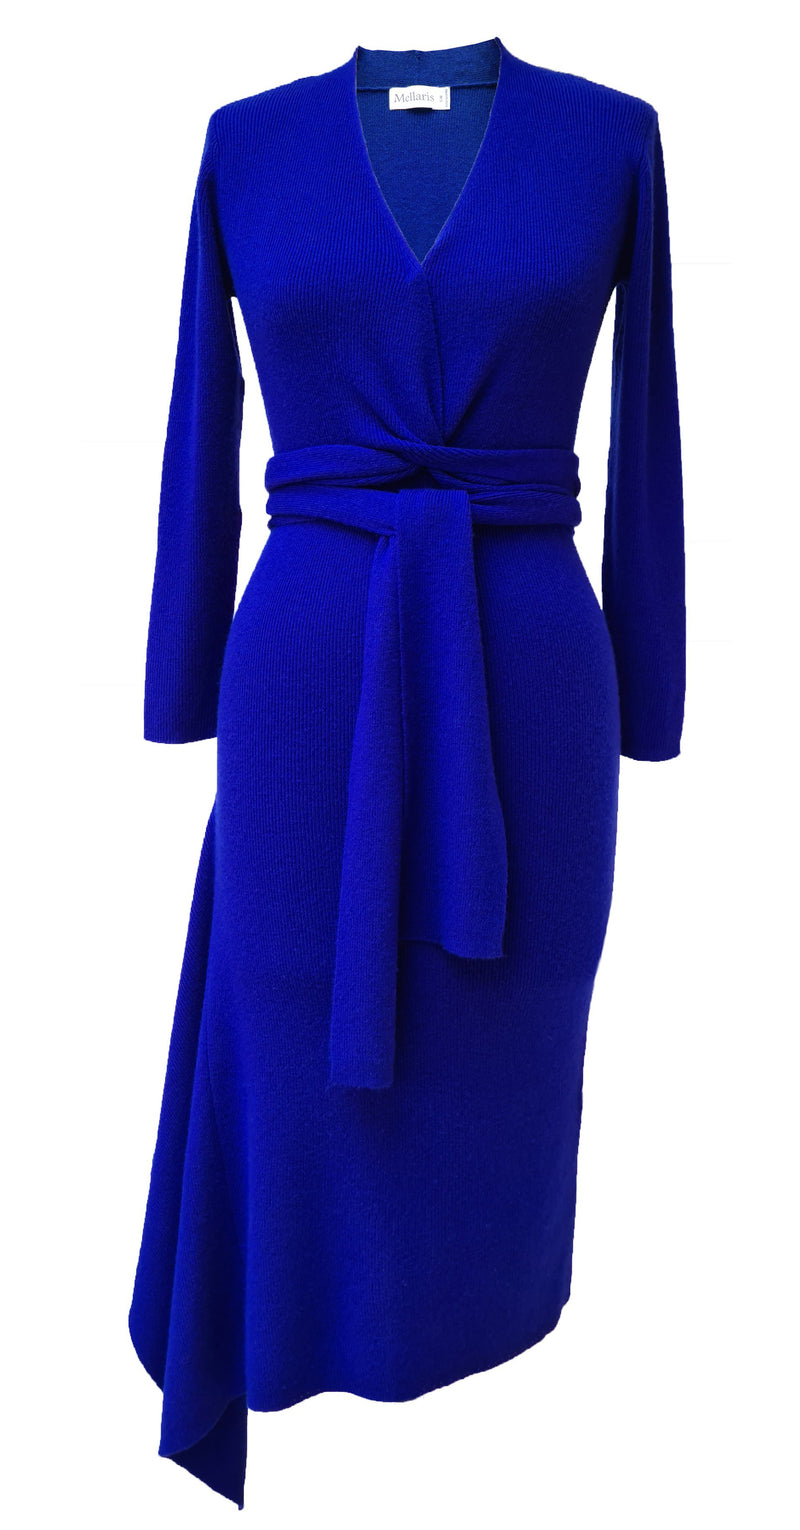 Eline Cashmere Blend Knitted Dress DRK289 Sapphire